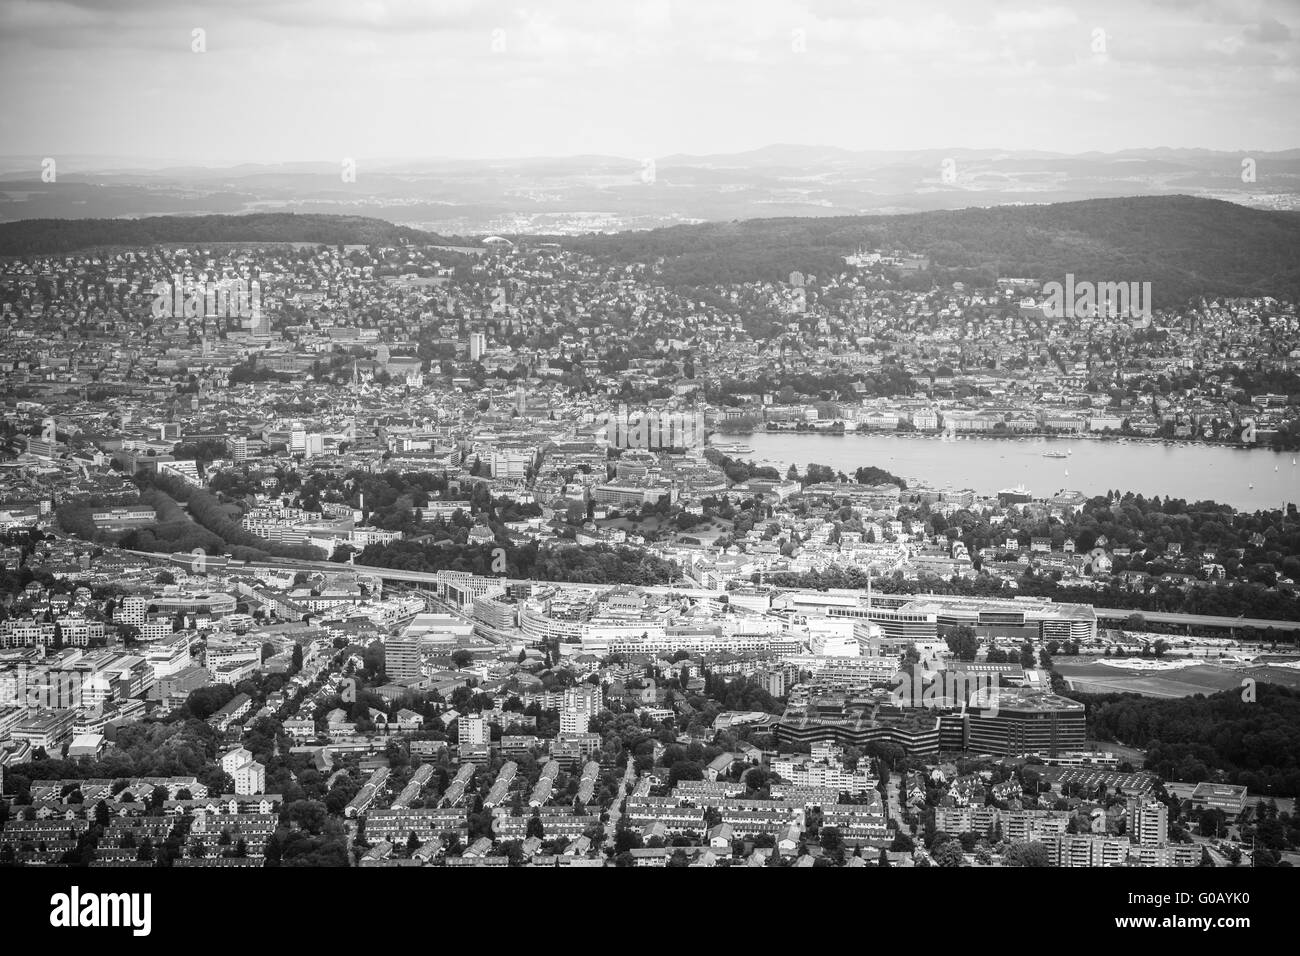 Aerial view of Zurich city and lake in black and white on top of Uetliberg, Zurich, Switzerland - Stock Image